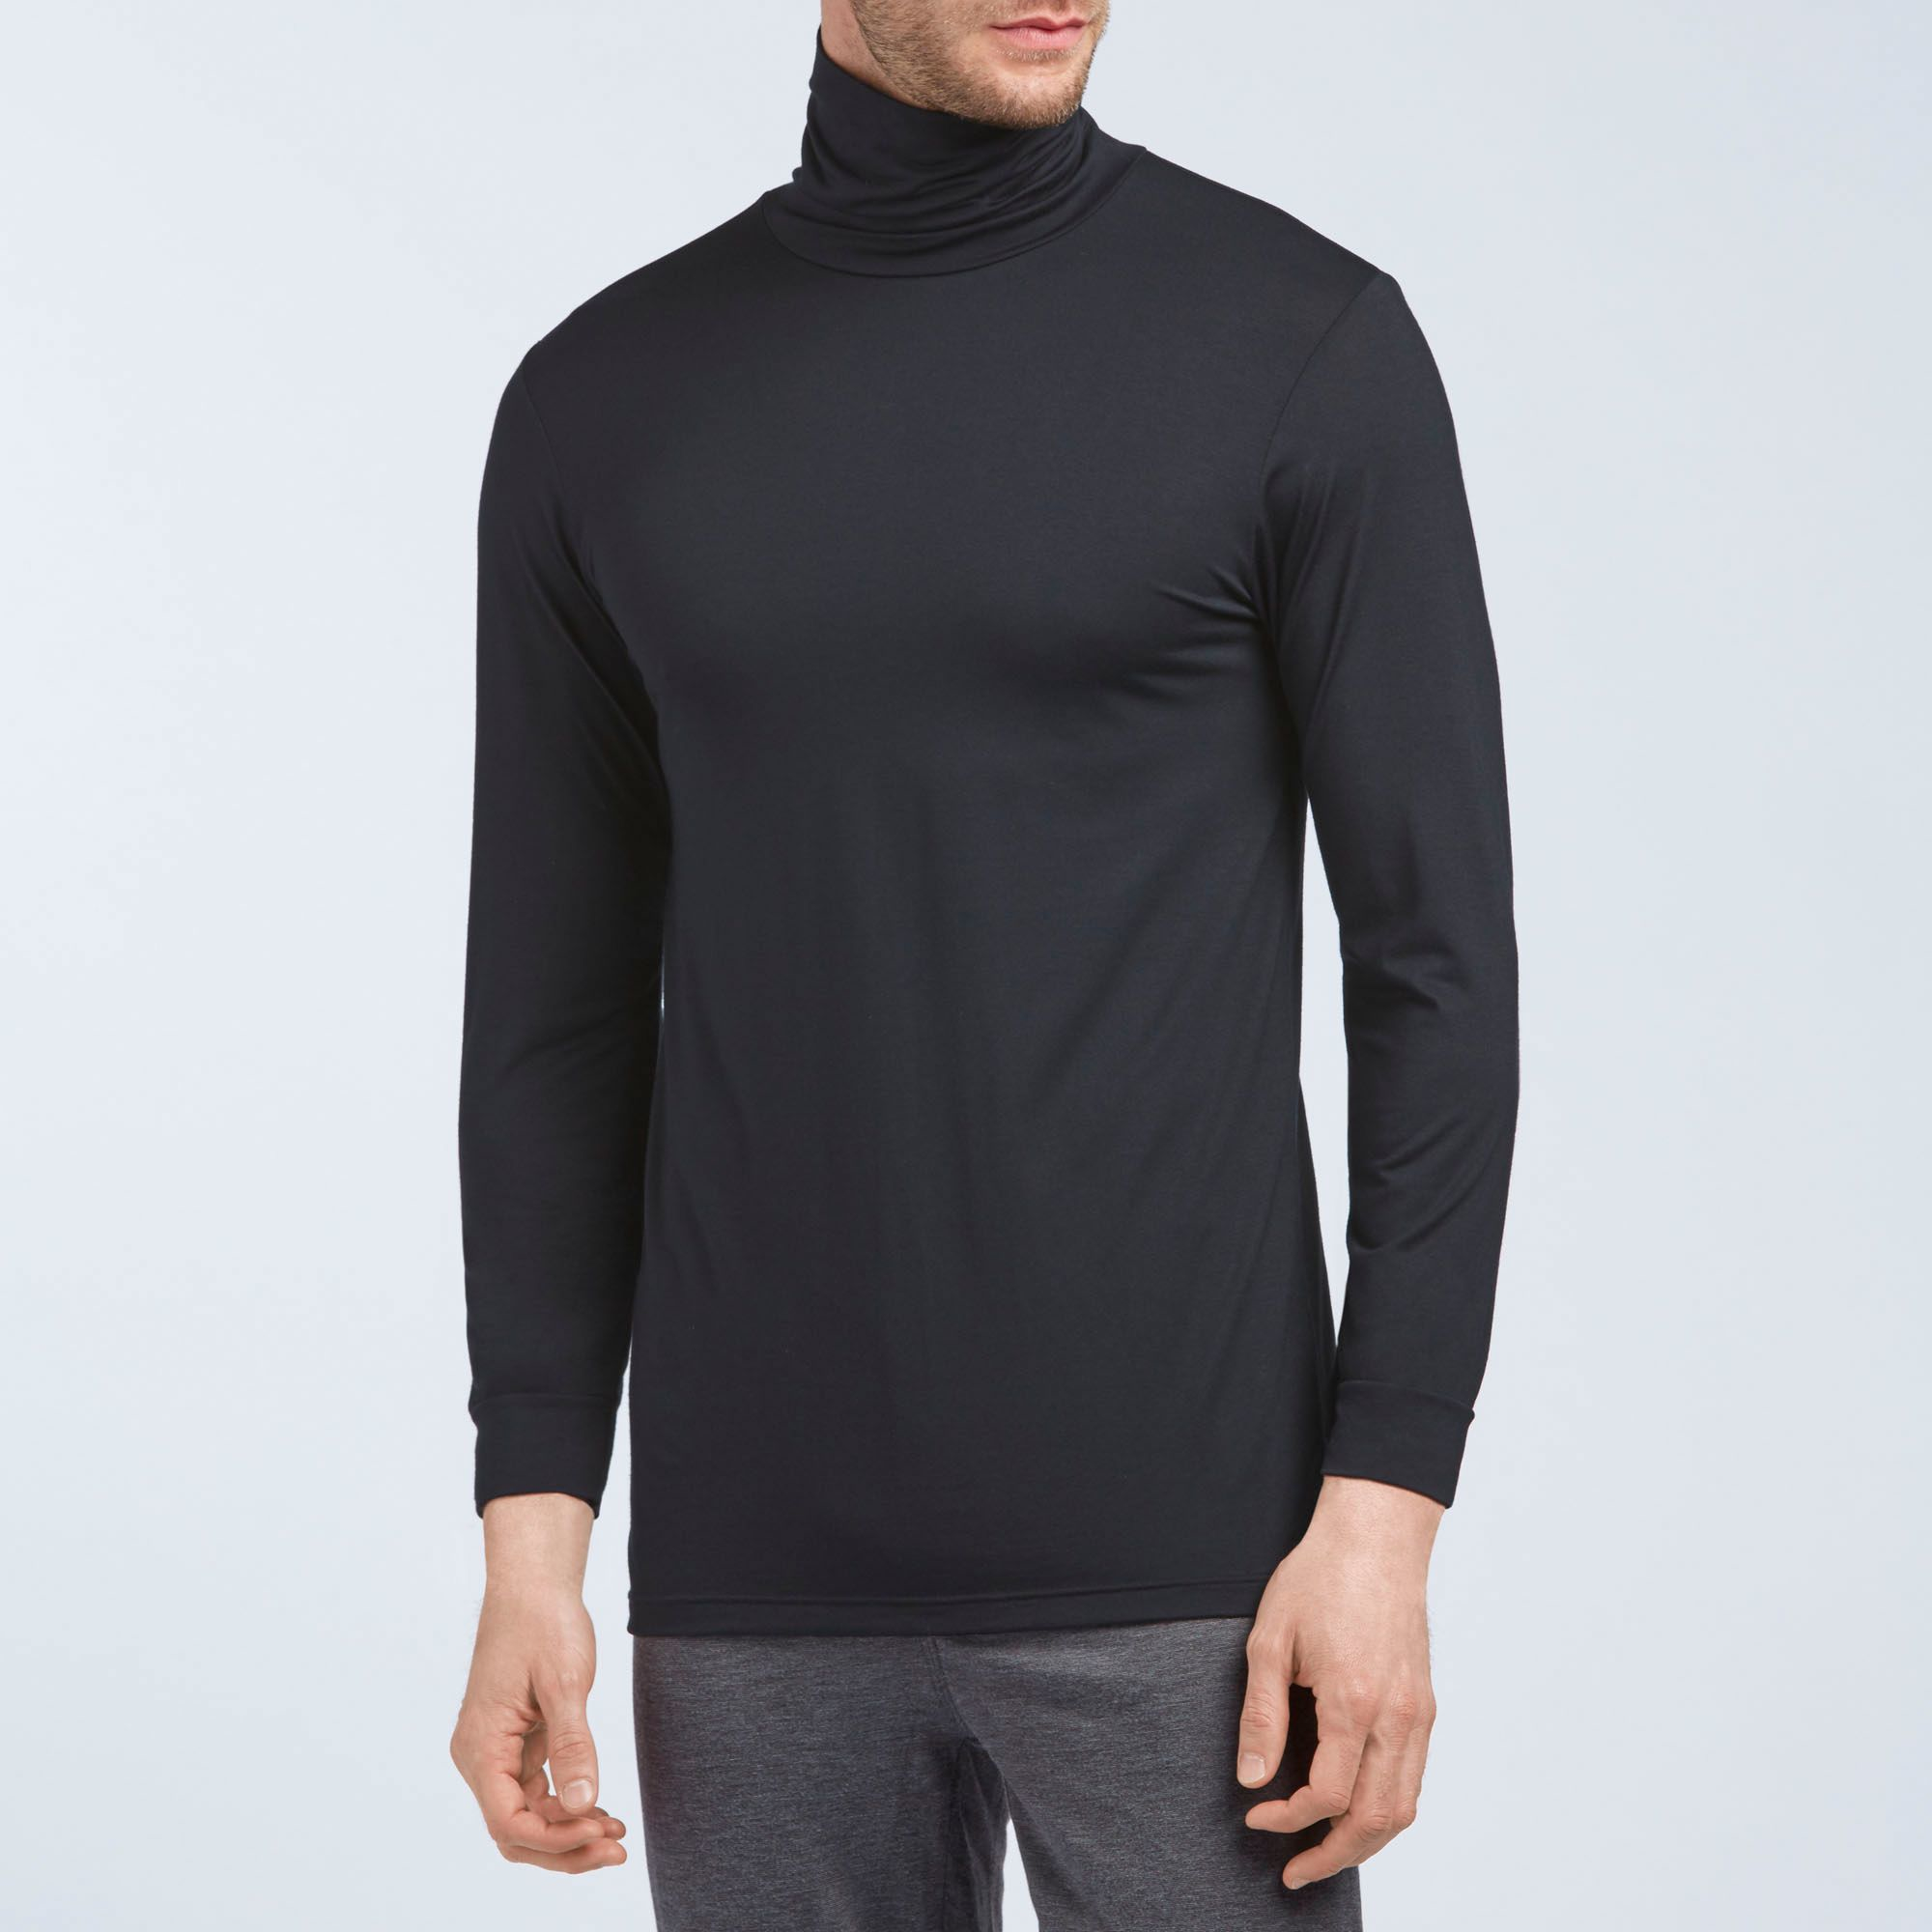 Ducati Performance Seamless Warm Up Cold Weather Long Sleeve Thermal Under Shirt